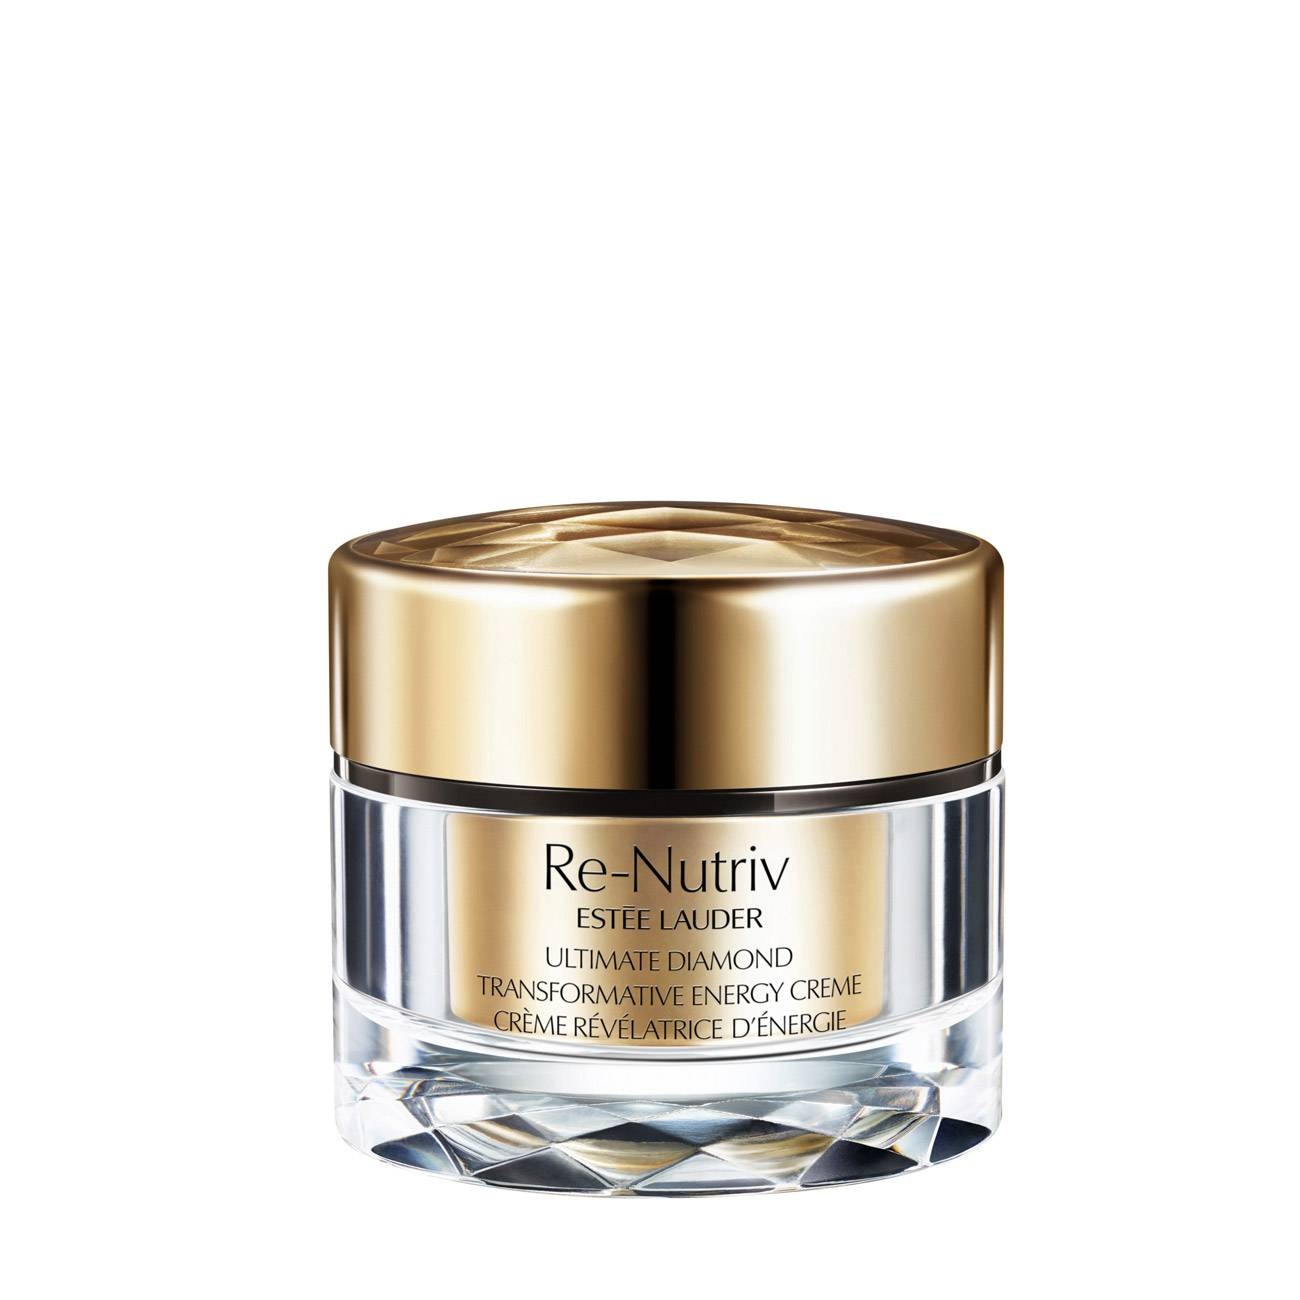 Re-Nutriv Diamond 50 Ml 50 Ml Estée Lauder imagine 2021 bestvalue.eu